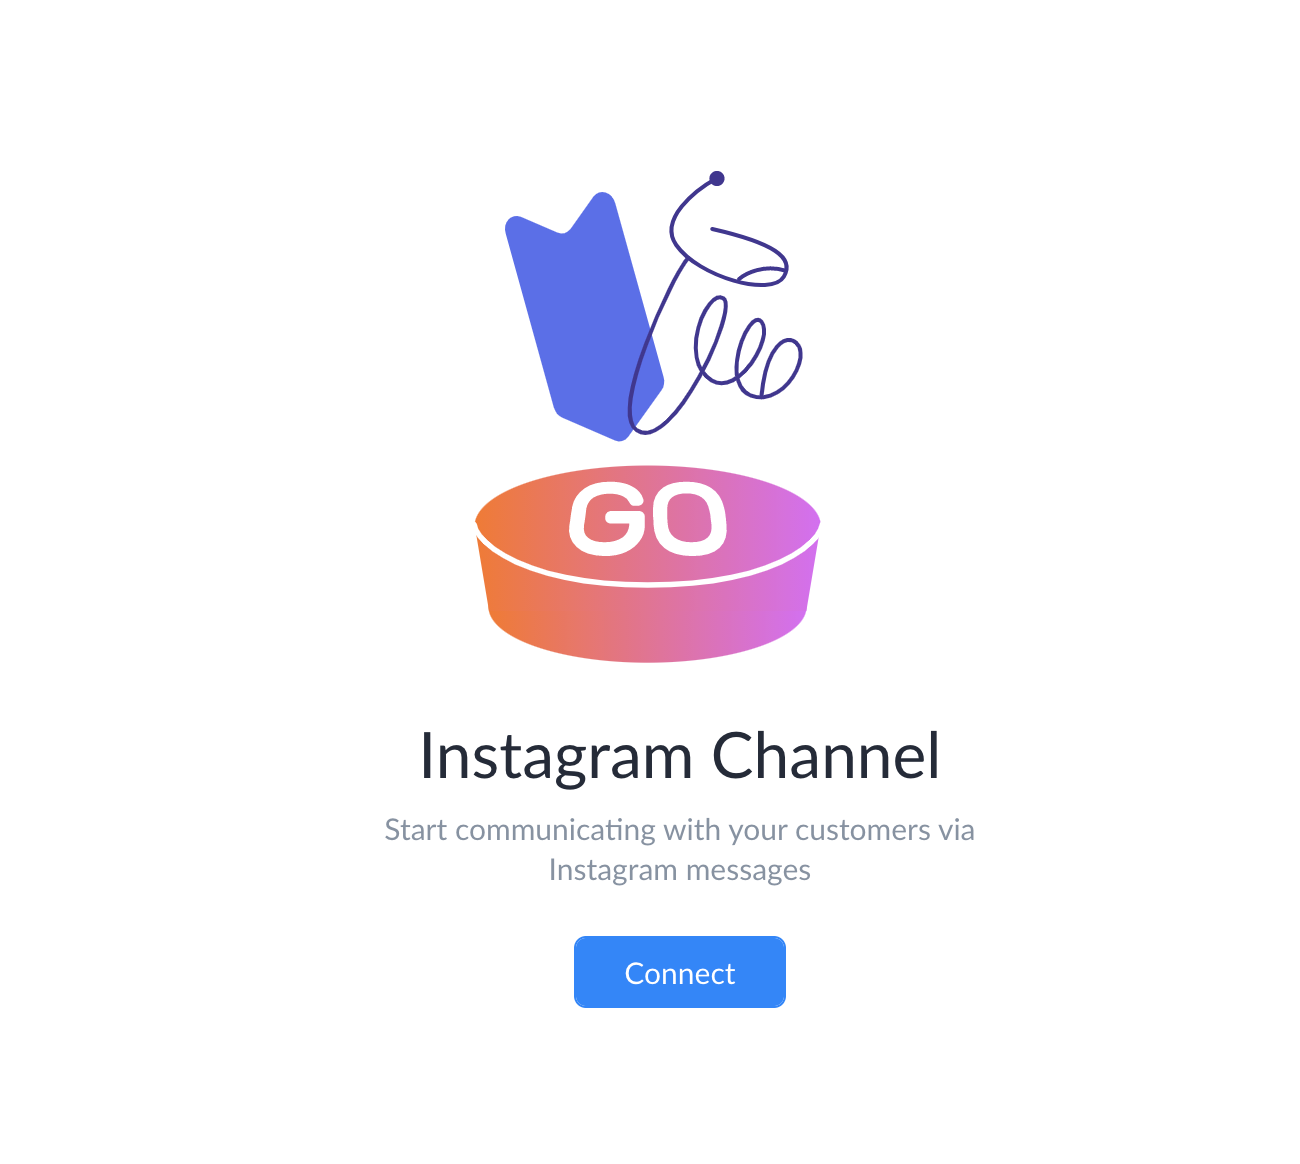 Connecting Instagram to ManyChat